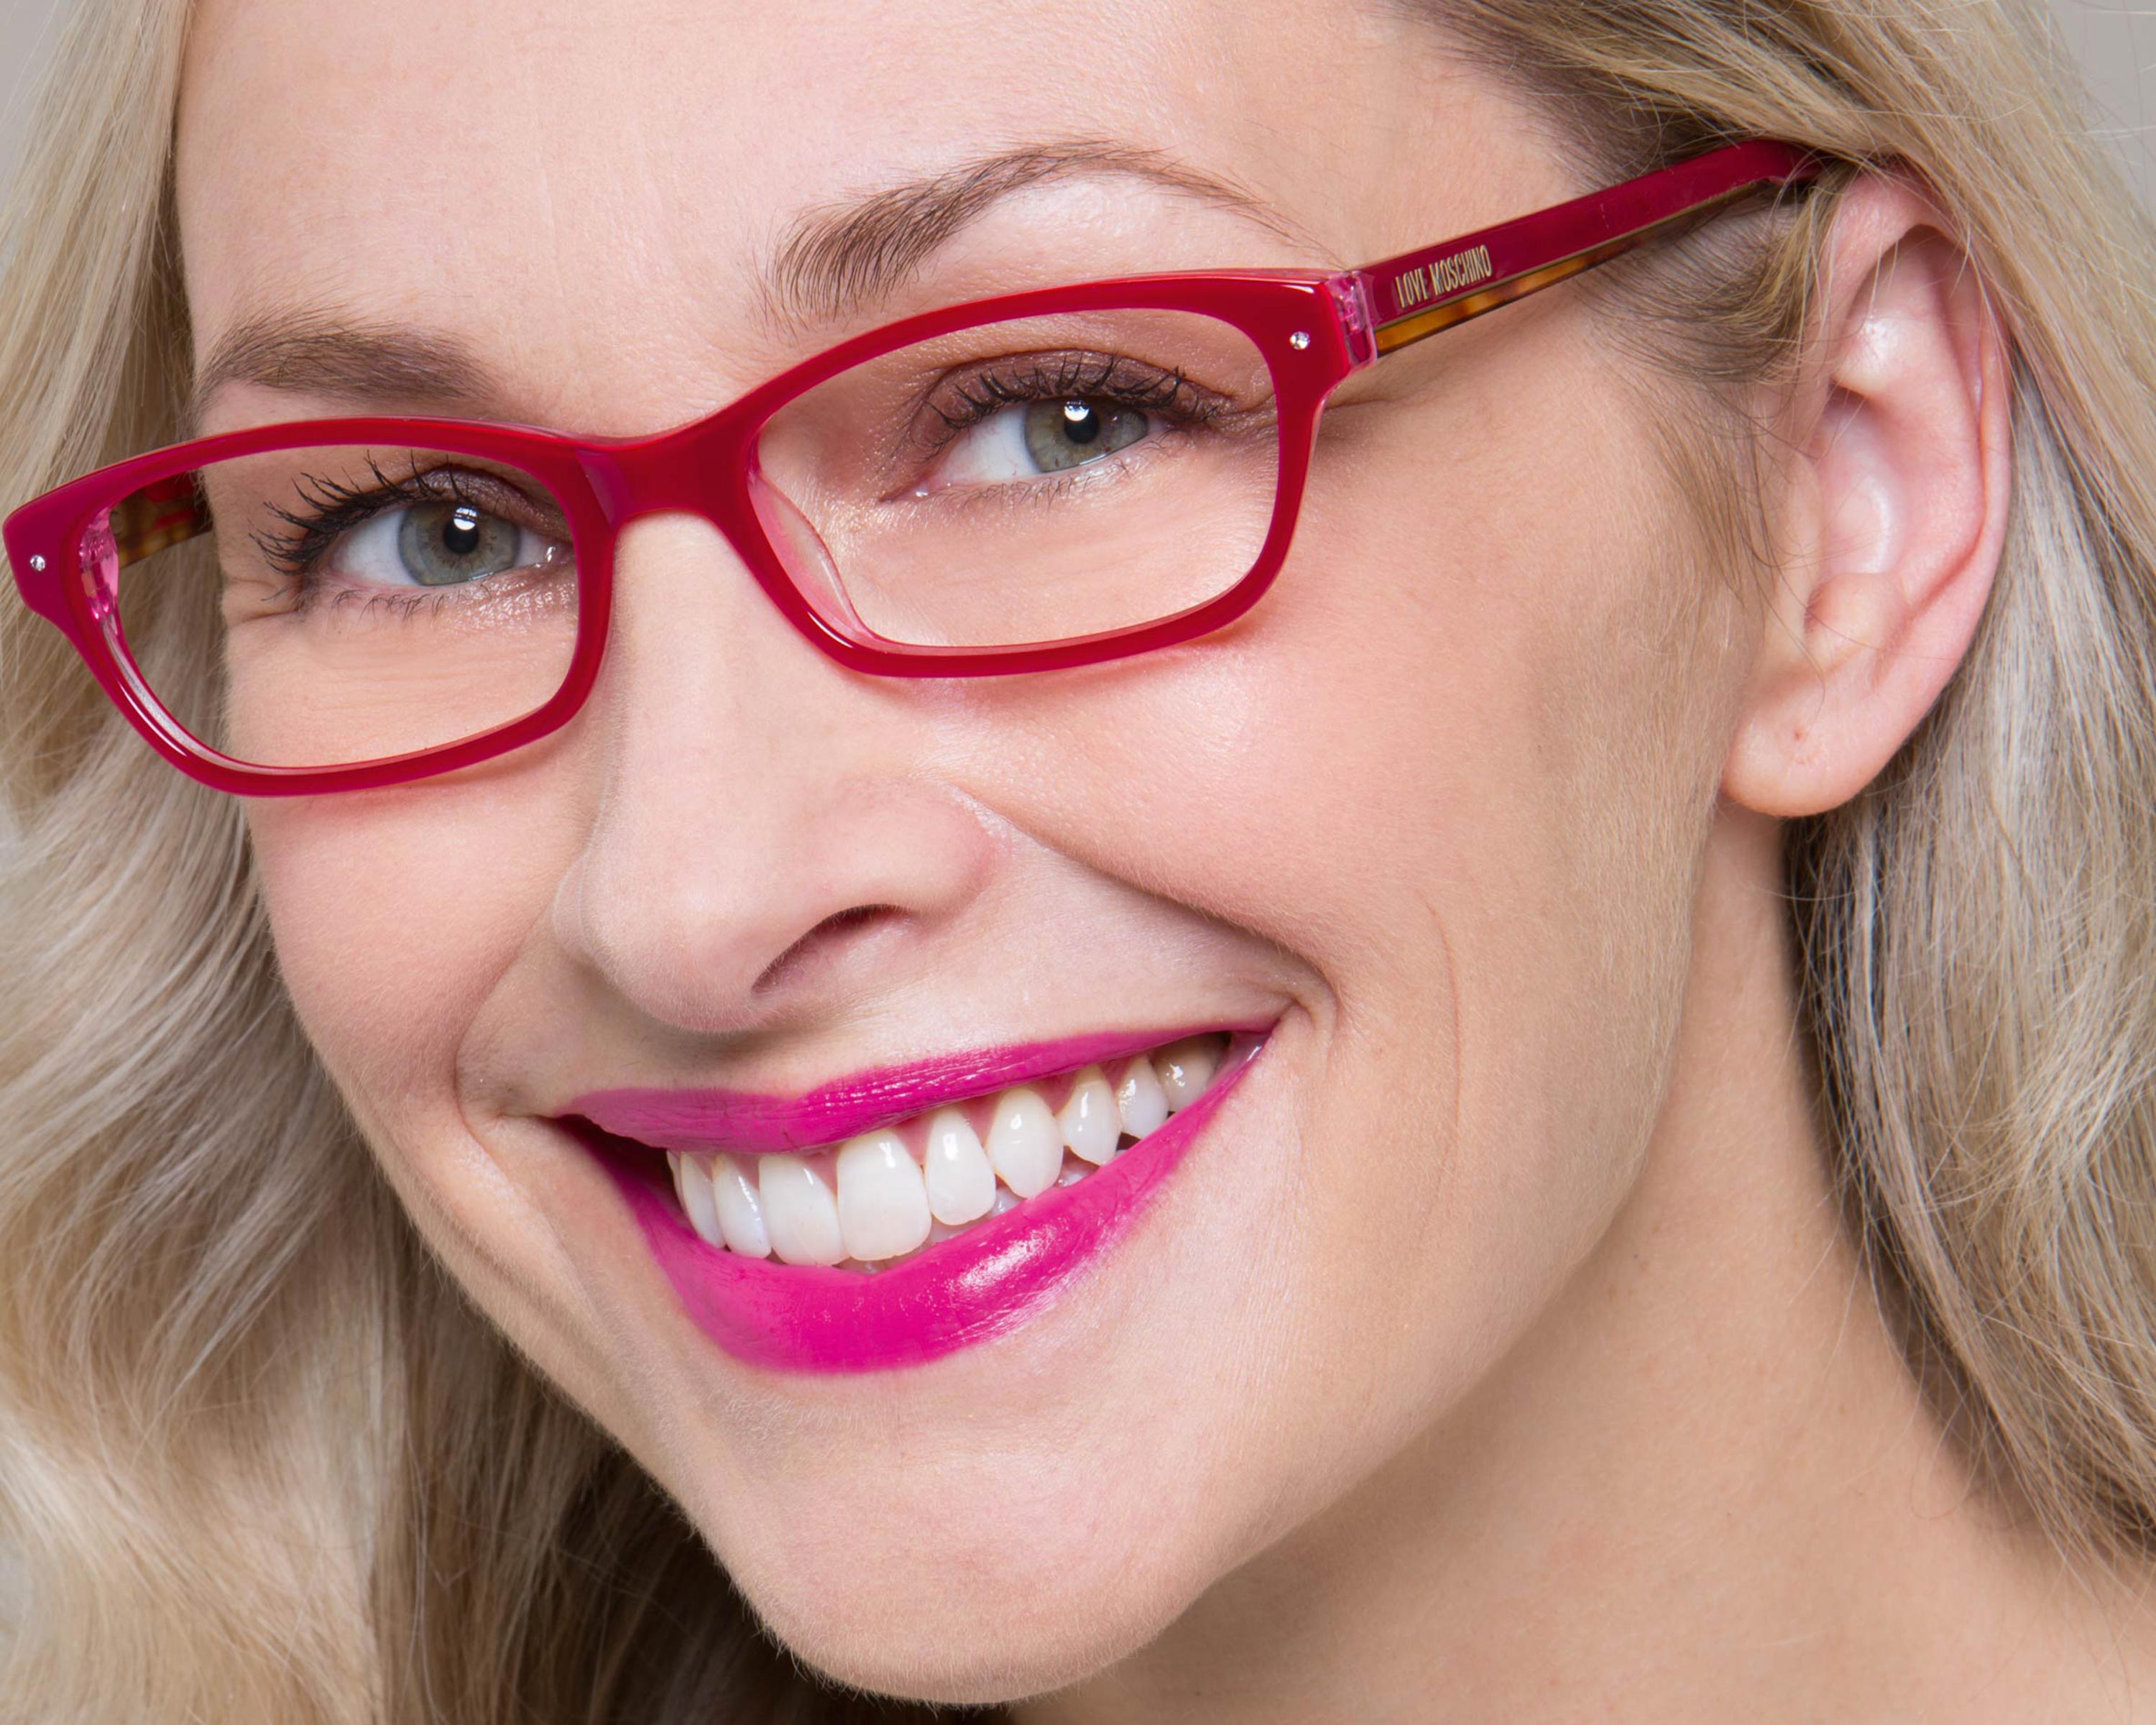 8 Create An Impact With Clashing Specs And Lippie You Don't Have To Stick  To Either Bright Specs Or Lipstick €� Create A Statement Look By Matching  Bright